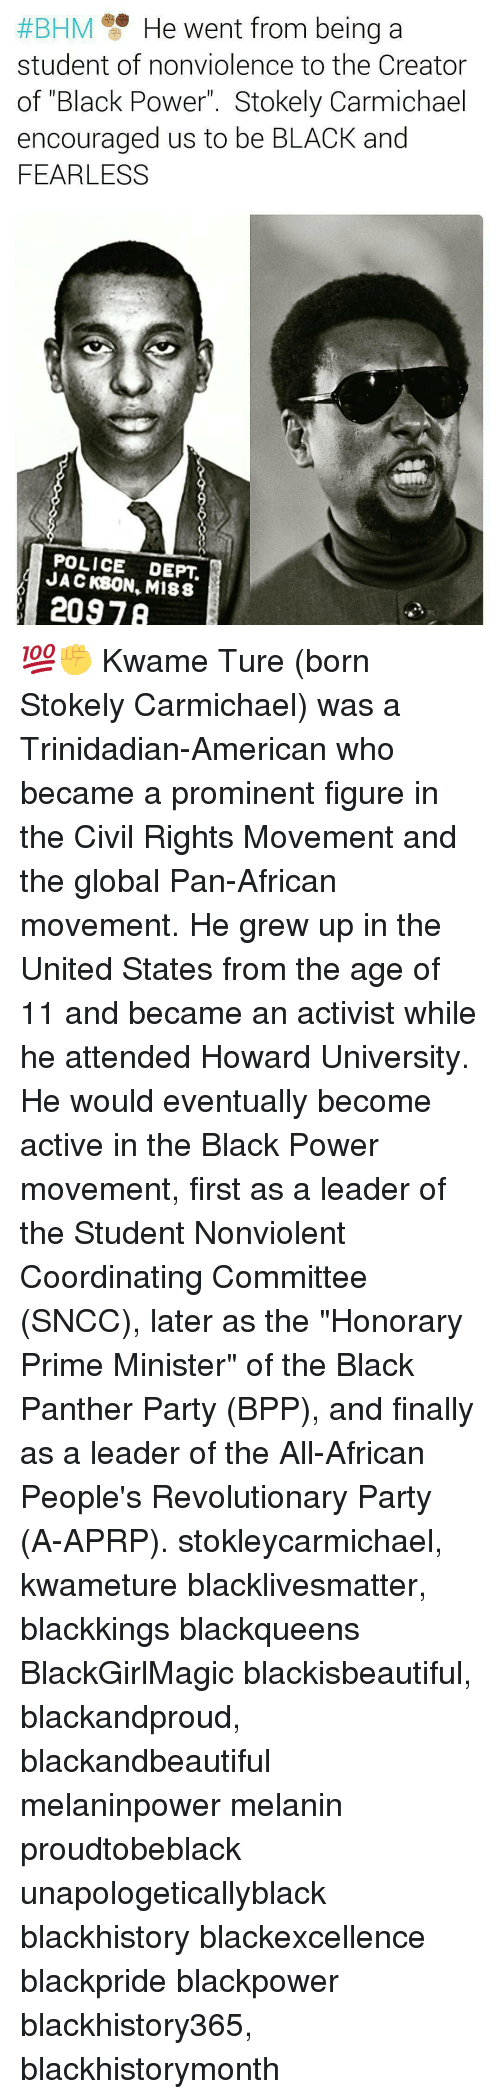 """Memes, Black Panther, and Black Panther Party:  #BHM He went from being a  student of nonviolence to the Creator  of """"Black Power Stokely Carmichael  encouraged us to be BLACK and  FEARLESS  POLICE DEPT  JACKBON, M188  2097 💯✊ Kwame Ture (born Stokely Carmichael) was a Trinidadian-American who became a prominent figure in the Civil Rights Movement and the global Pan-African movement. He grew up in the United States from the age of 11 and became an activist while he attended Howard University. He would eventually become active in the Black Power movement, first as a leader of the Student Nonviolent Coordinating Committee (SNCC), later as the """"Honorary Prime Minister"""" of the Black Panther Party (BPP), and finally as a leader of the All-African People's Revolutionary Party (A-APRP). stokleycarmichael, kwameture blacklivesmatter, blackkings blackqueens BlackGirlMagic blackisbeautiful, blackandproud, blackandbeautiful melaninpower melanin proudtobeblack unapologeticallyblack blackhistory blackexcellence blackpride blackpower blackhistory365, blackhistorymonth"""